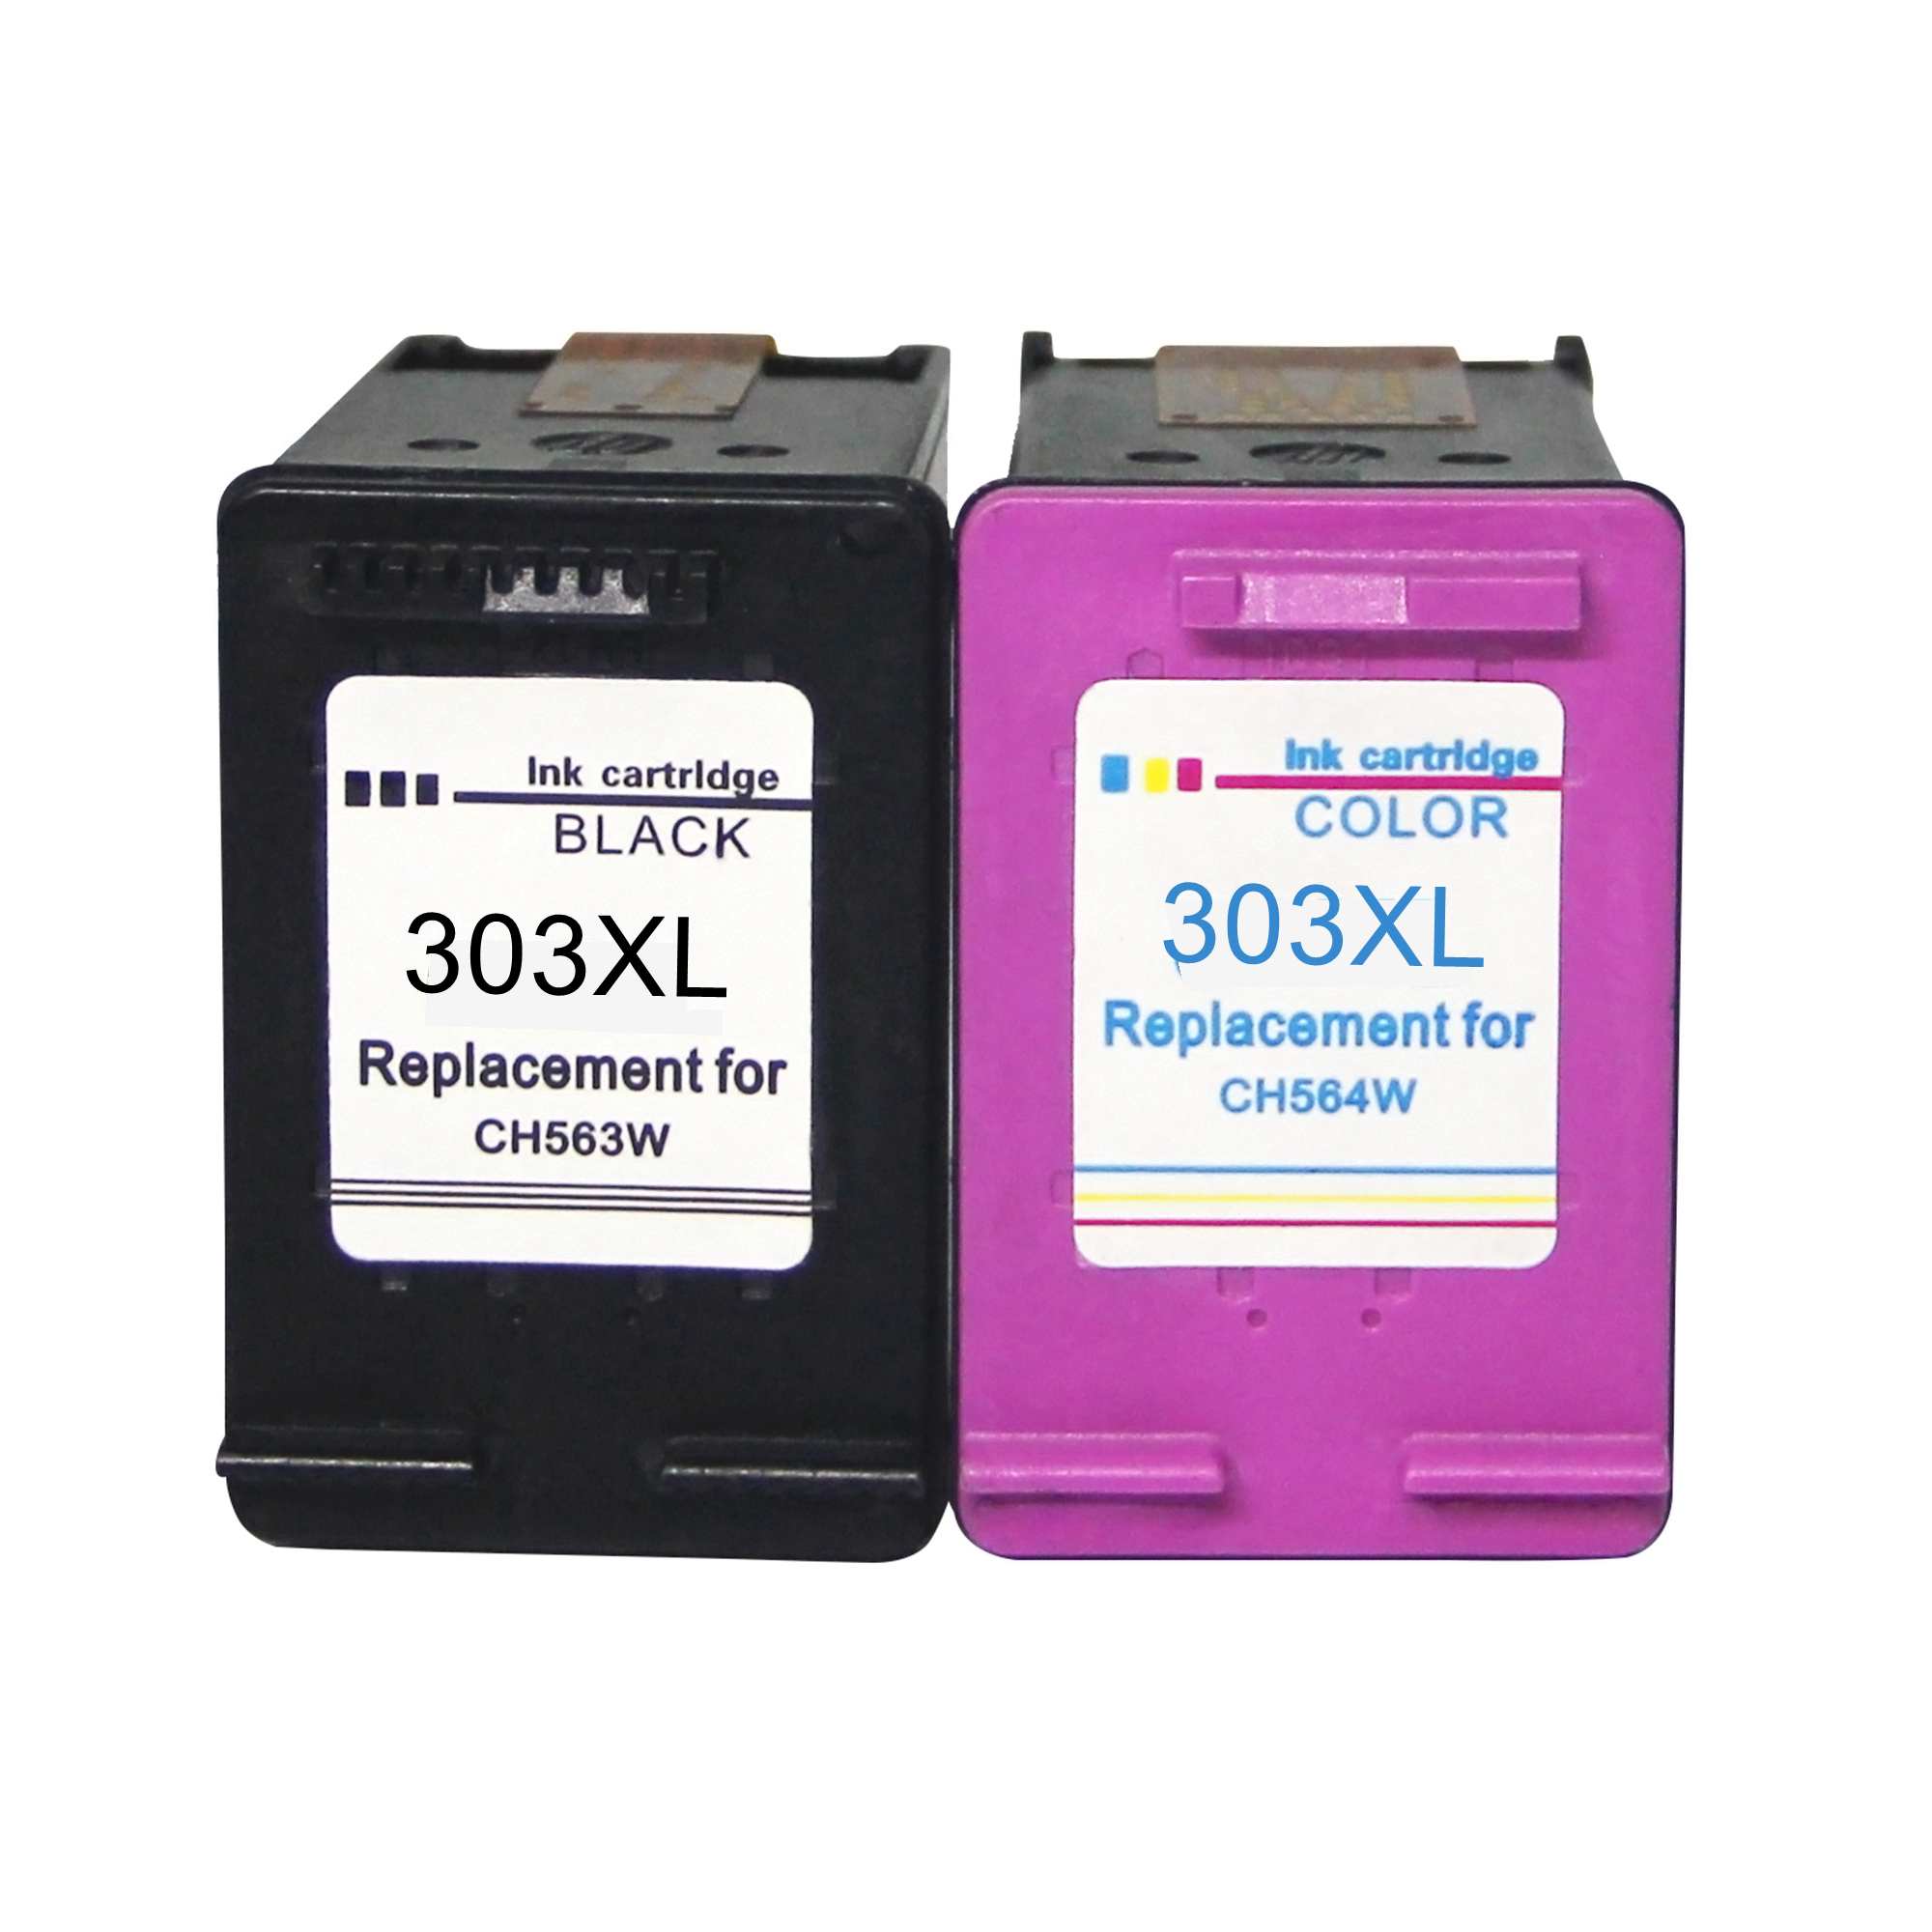 Replacement For HP 303XL Black & Color Ink Cartridges For HP Envy Photo 7130 6230 7830 7134 6220 6232 6234 71830 Printers